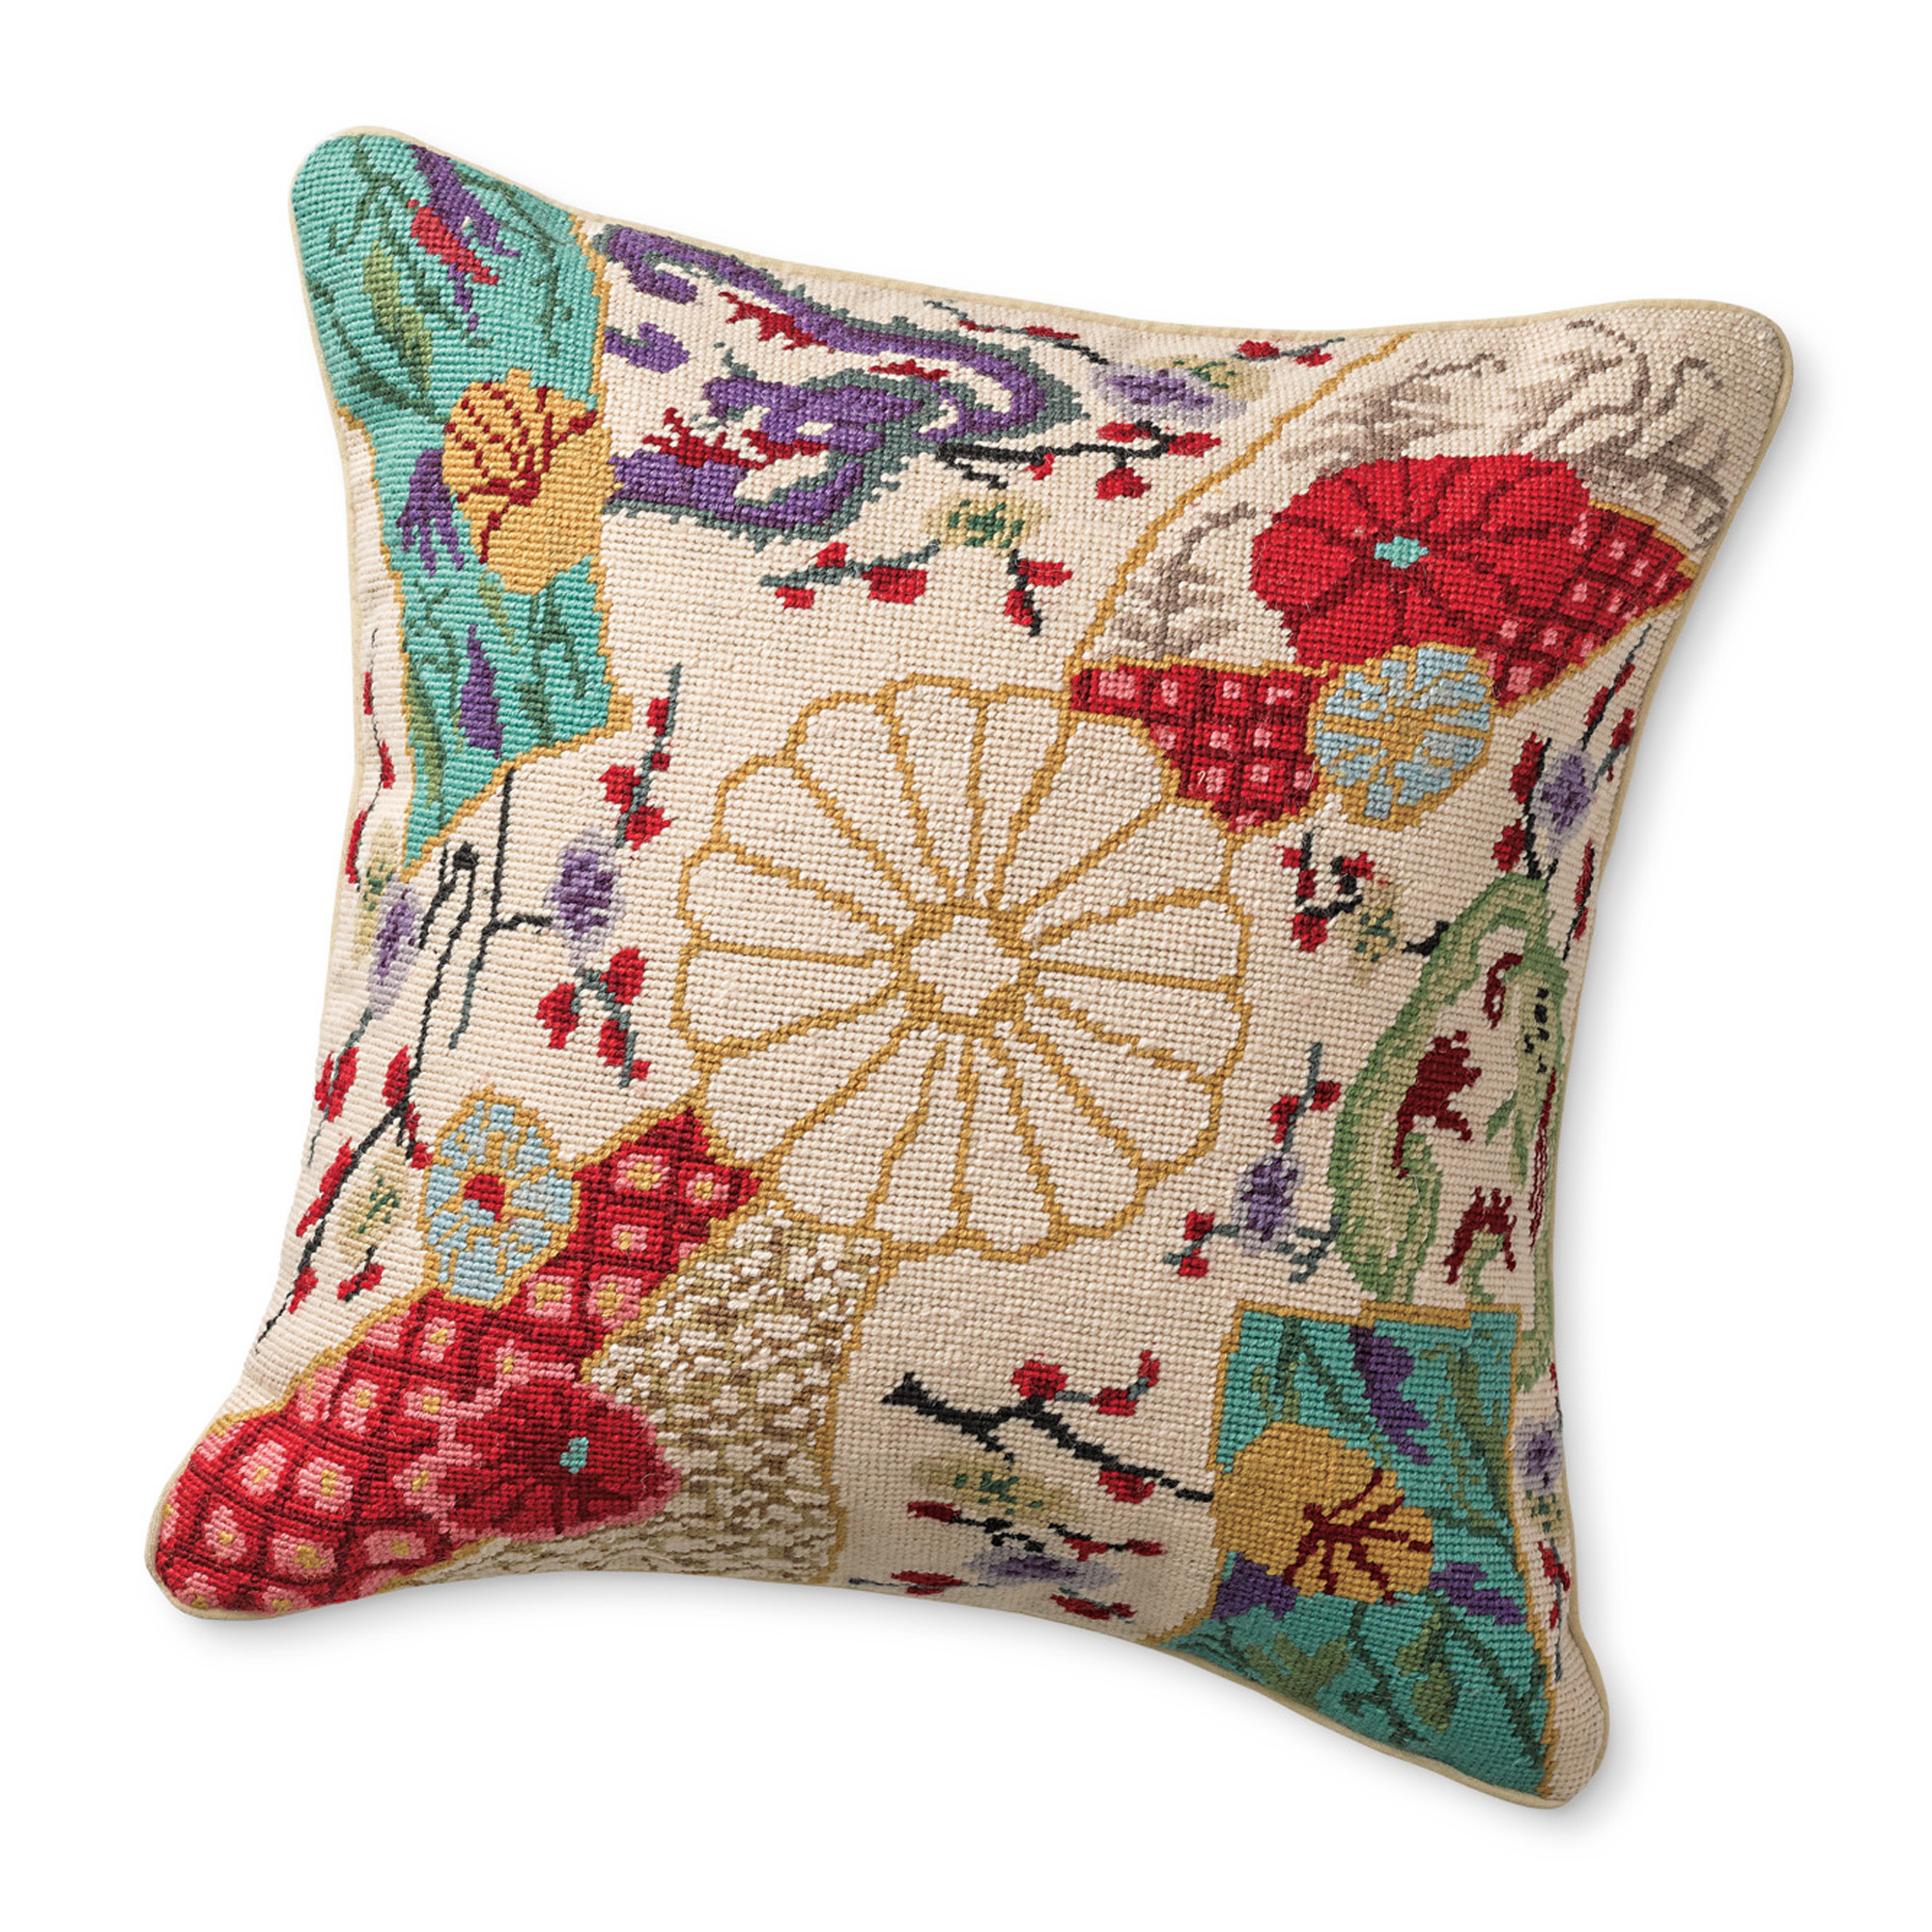 Imari Dragon Needlepoint Pillow